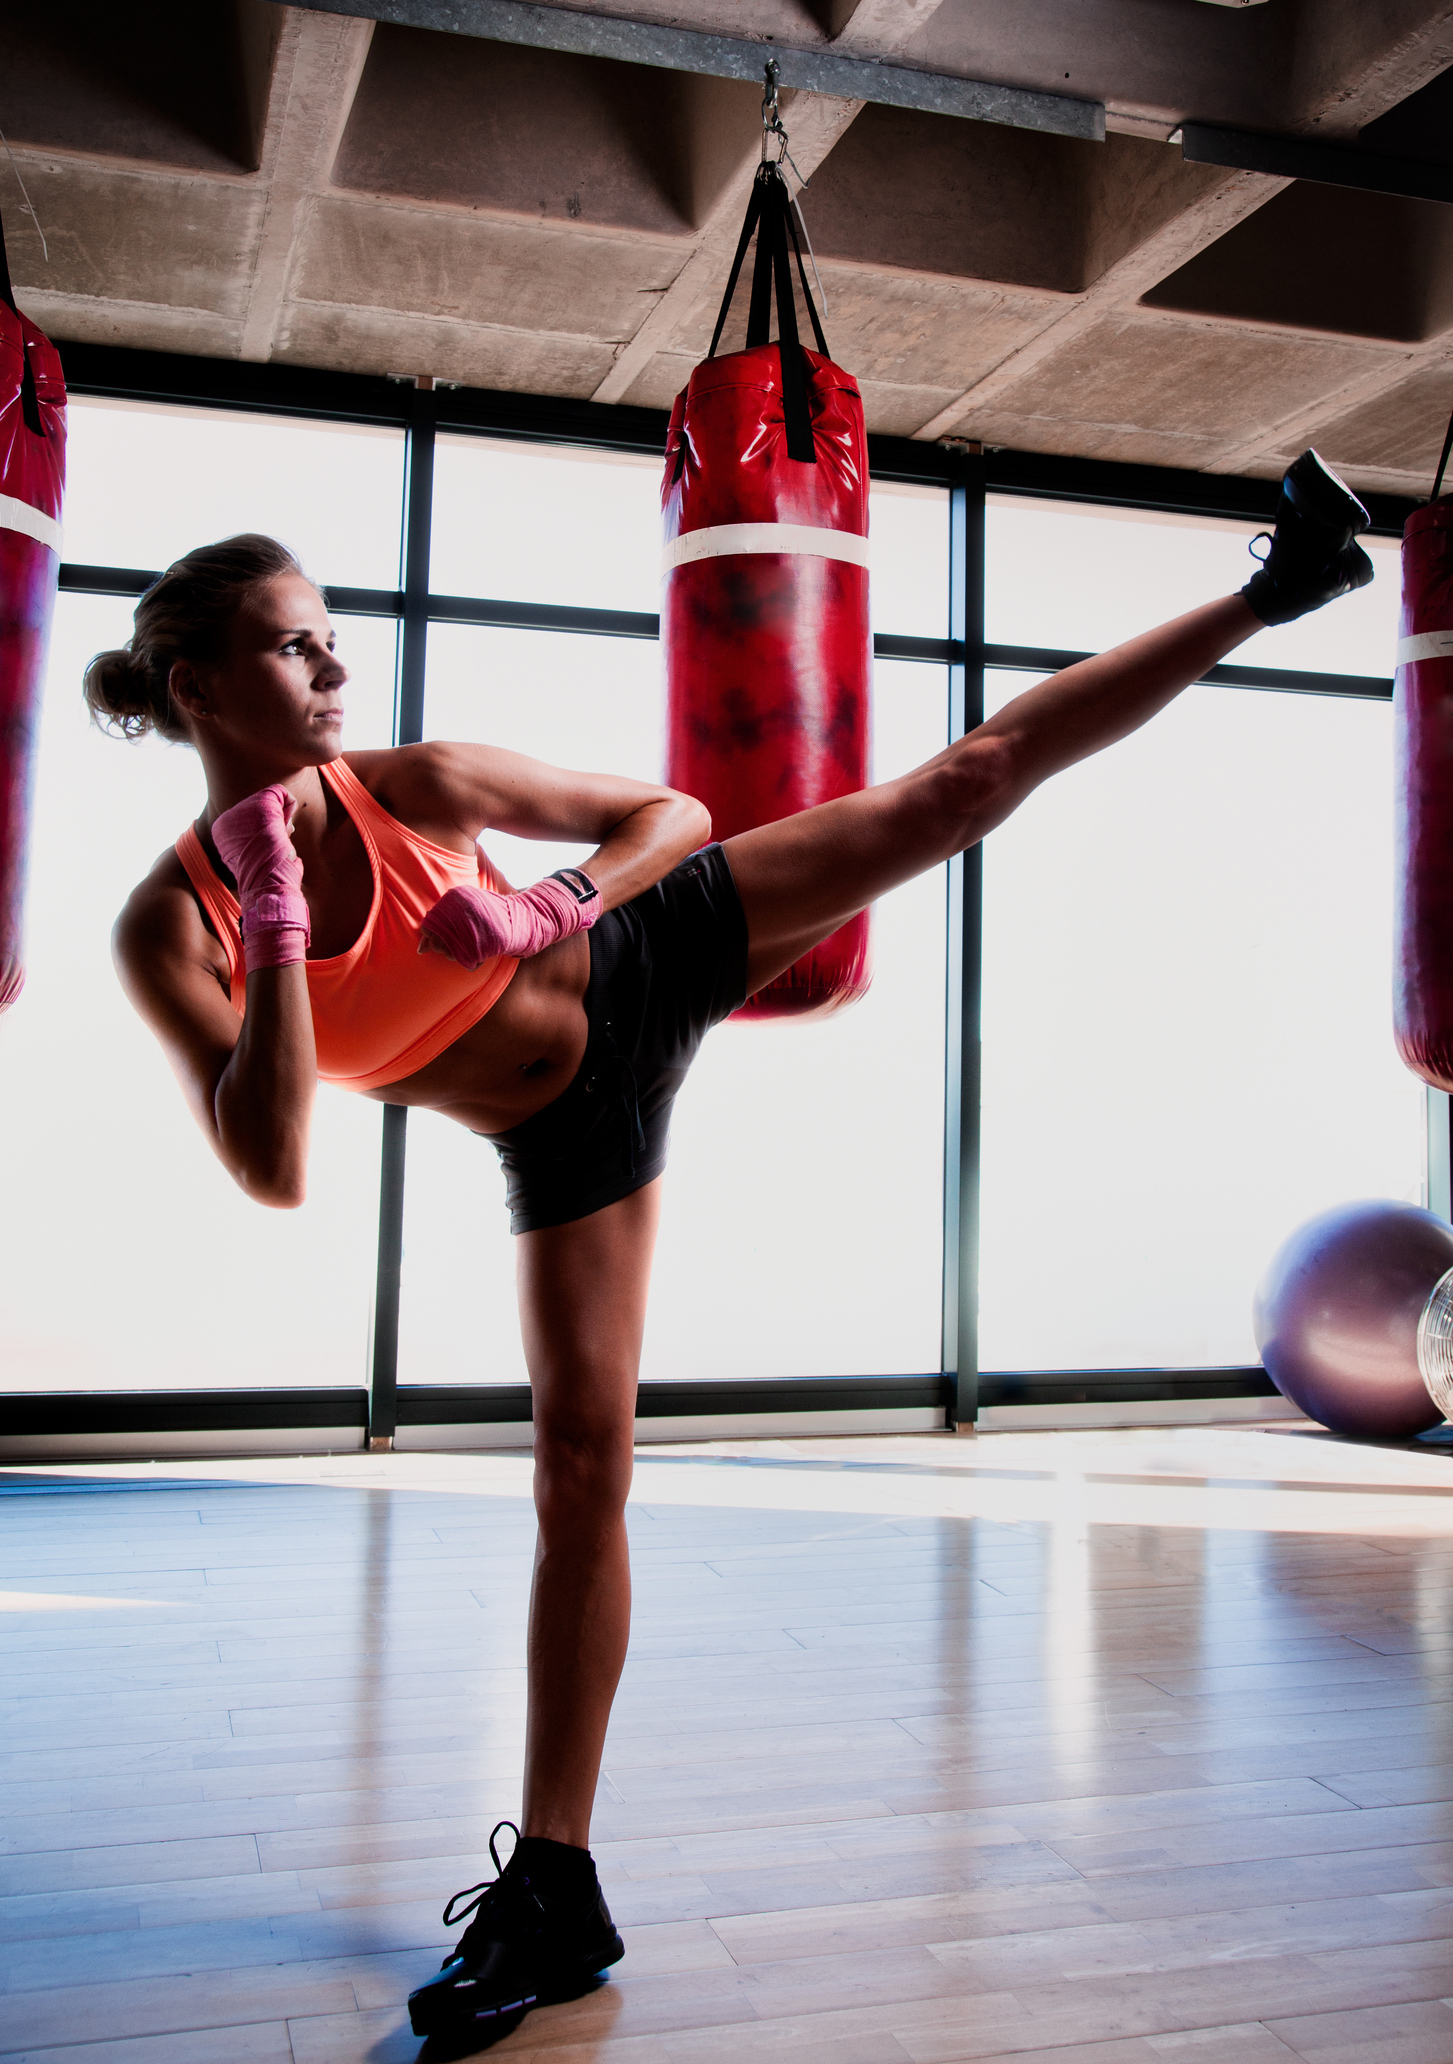 Best Boxing Workout Moves You Can Do At Home Fitness